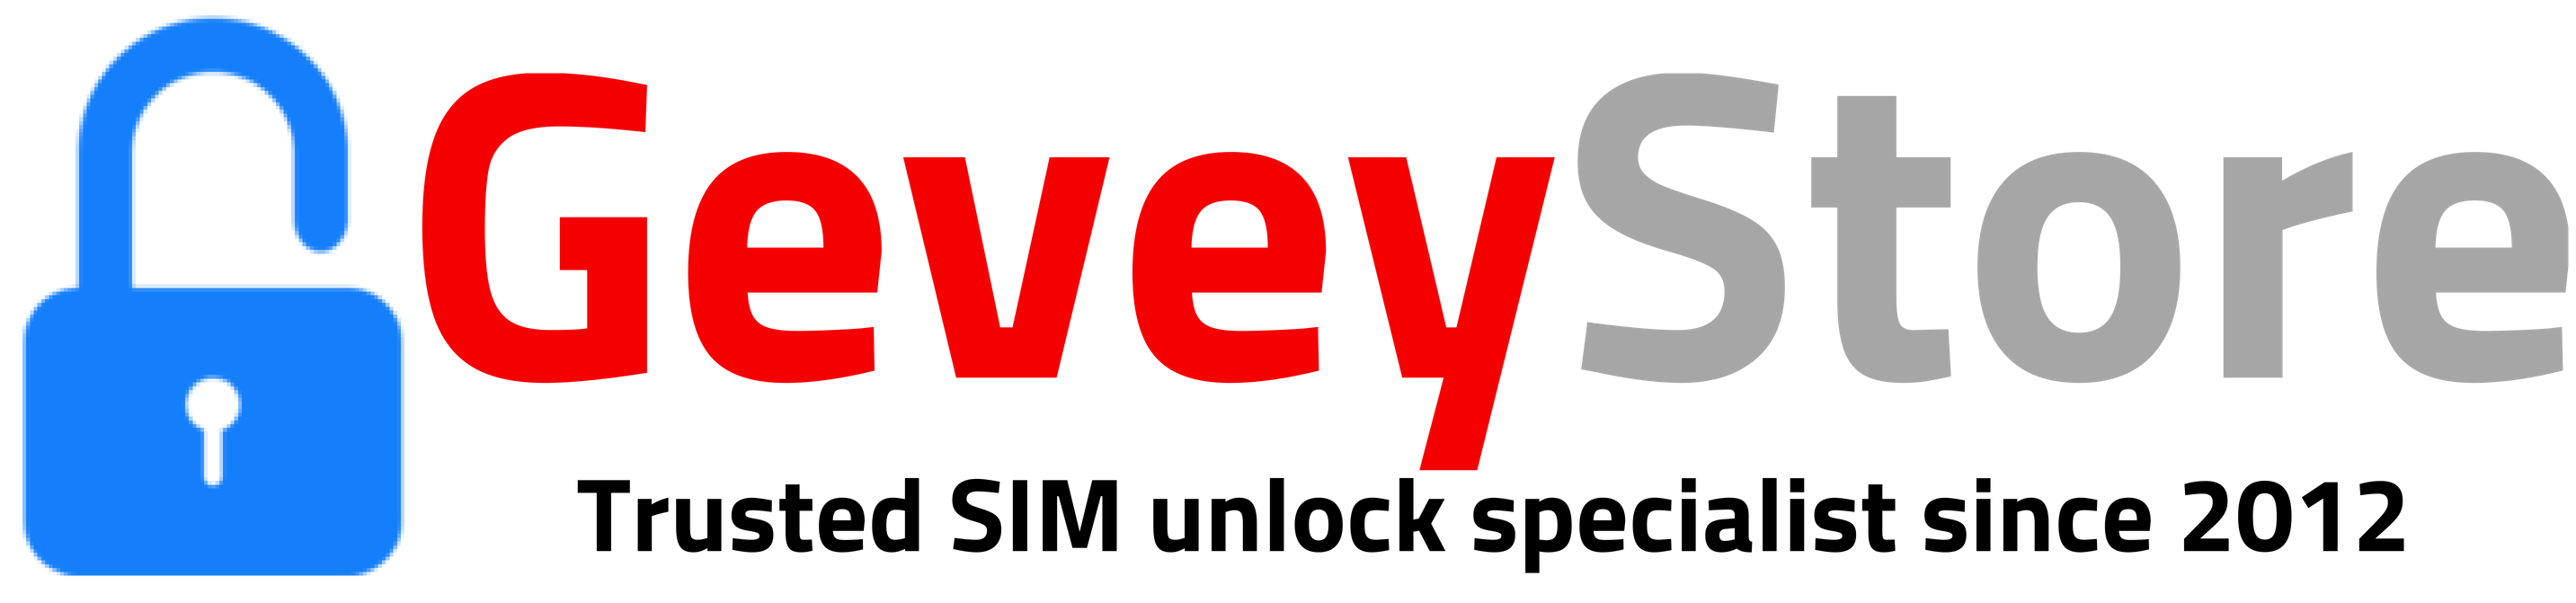 RSIM, XSIM, Gevey SIM and more